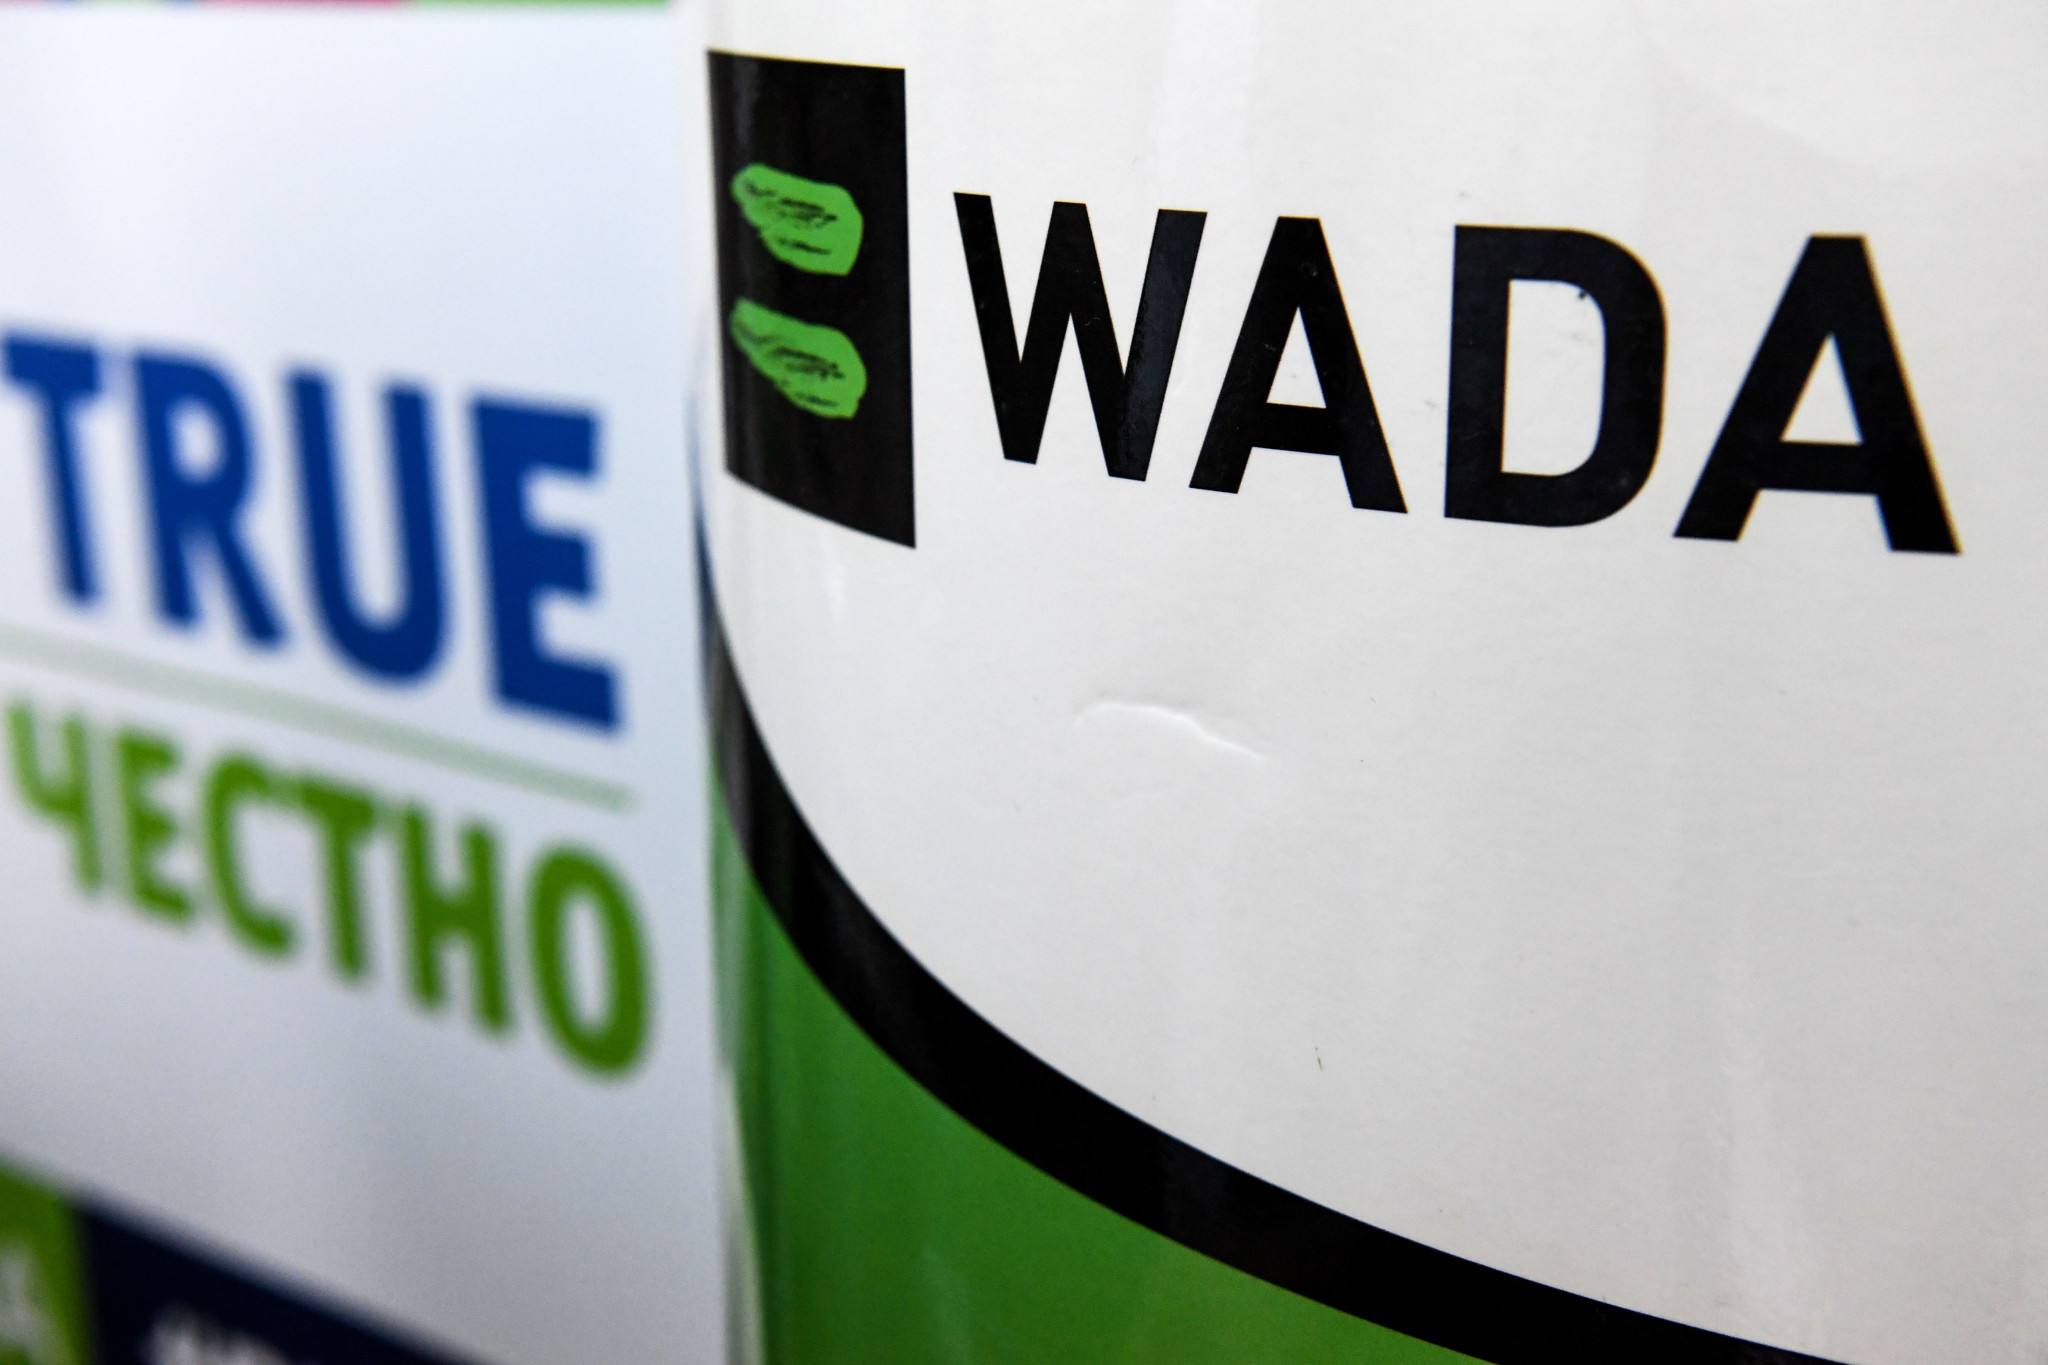 The WADA investigation